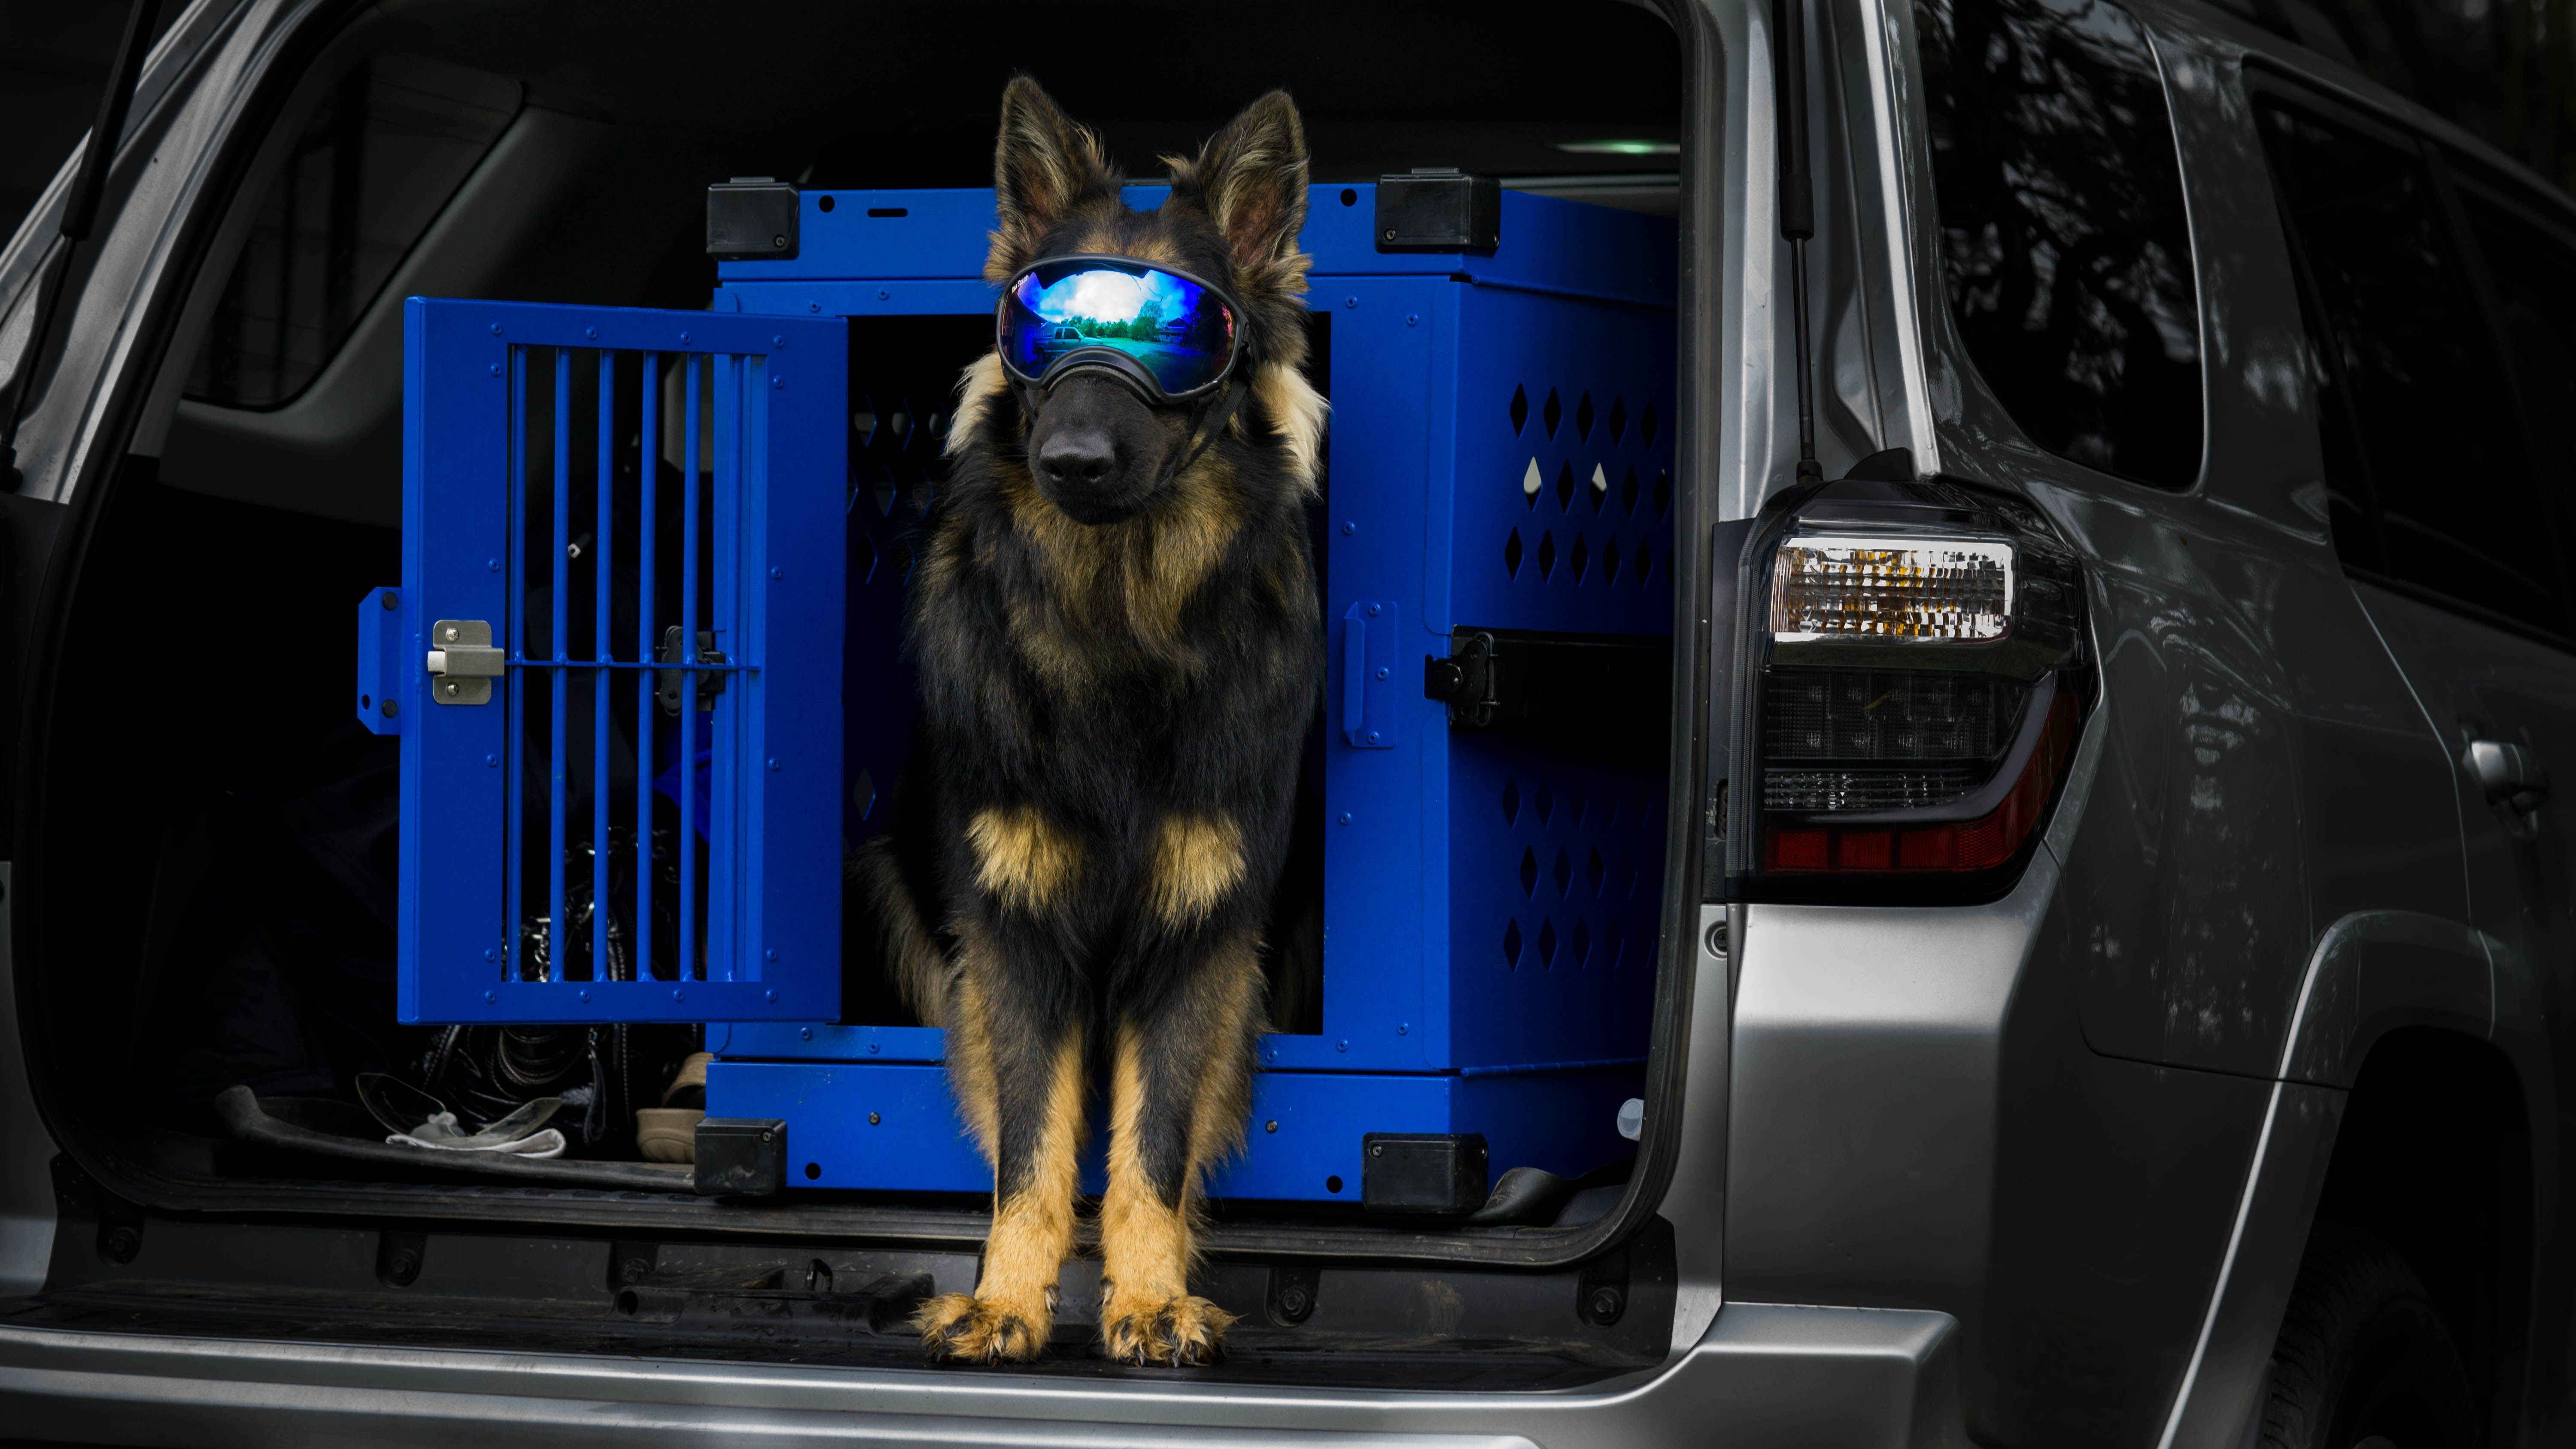 Collapsible Impact Dog Crate In The Back Of An Suv Puppylove Puppy Puppygram Puppyoftheday Puppylife Puppydog Puppypala Puppy Palace Dog Crate Dog Life